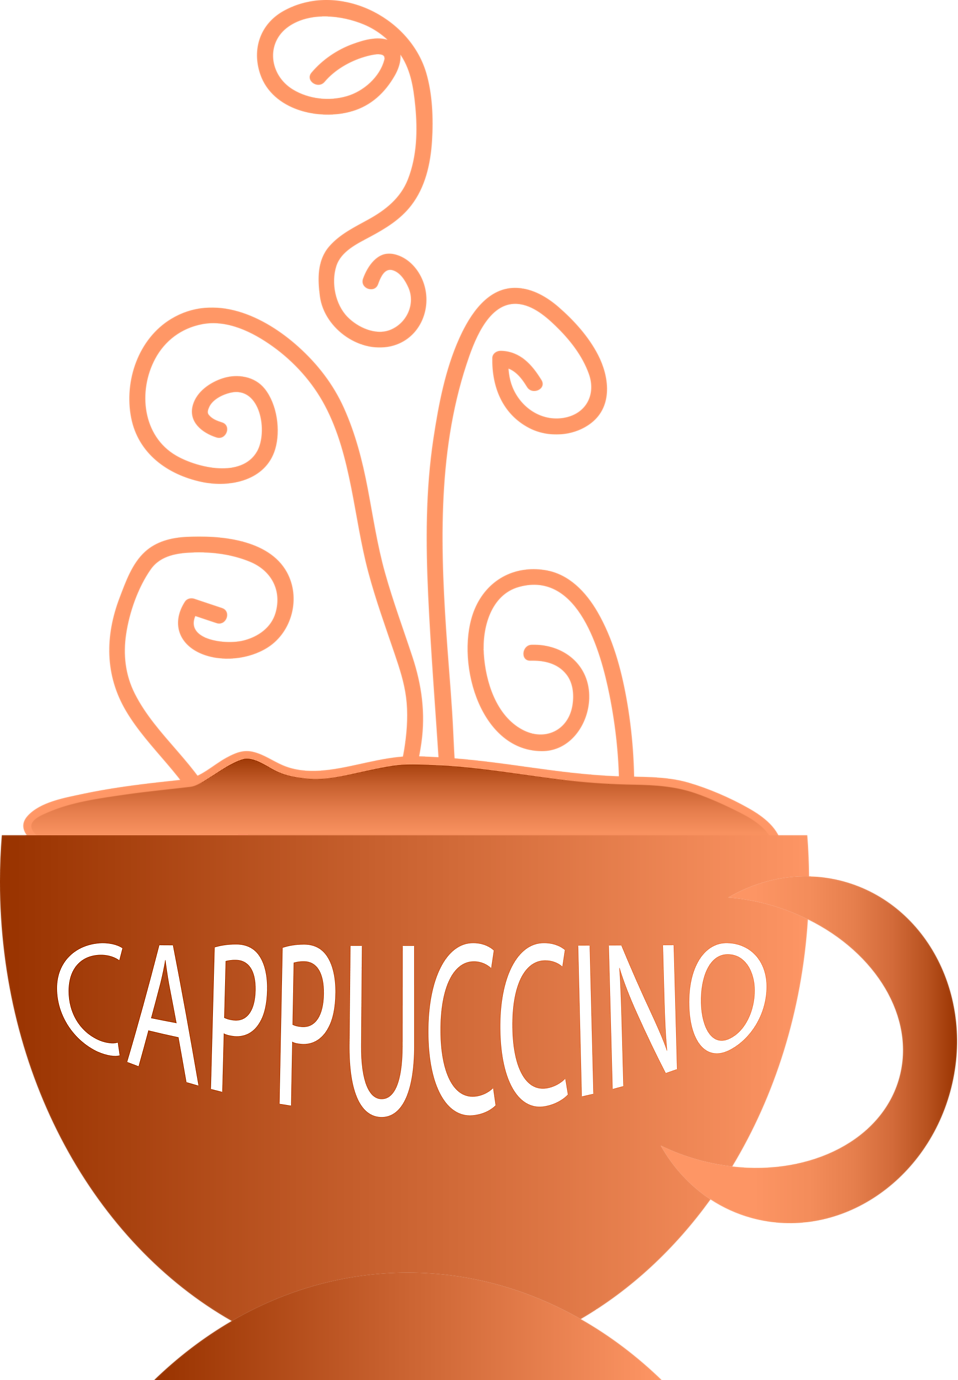 Illustration of a hot cup of cappuccino with a transparent background